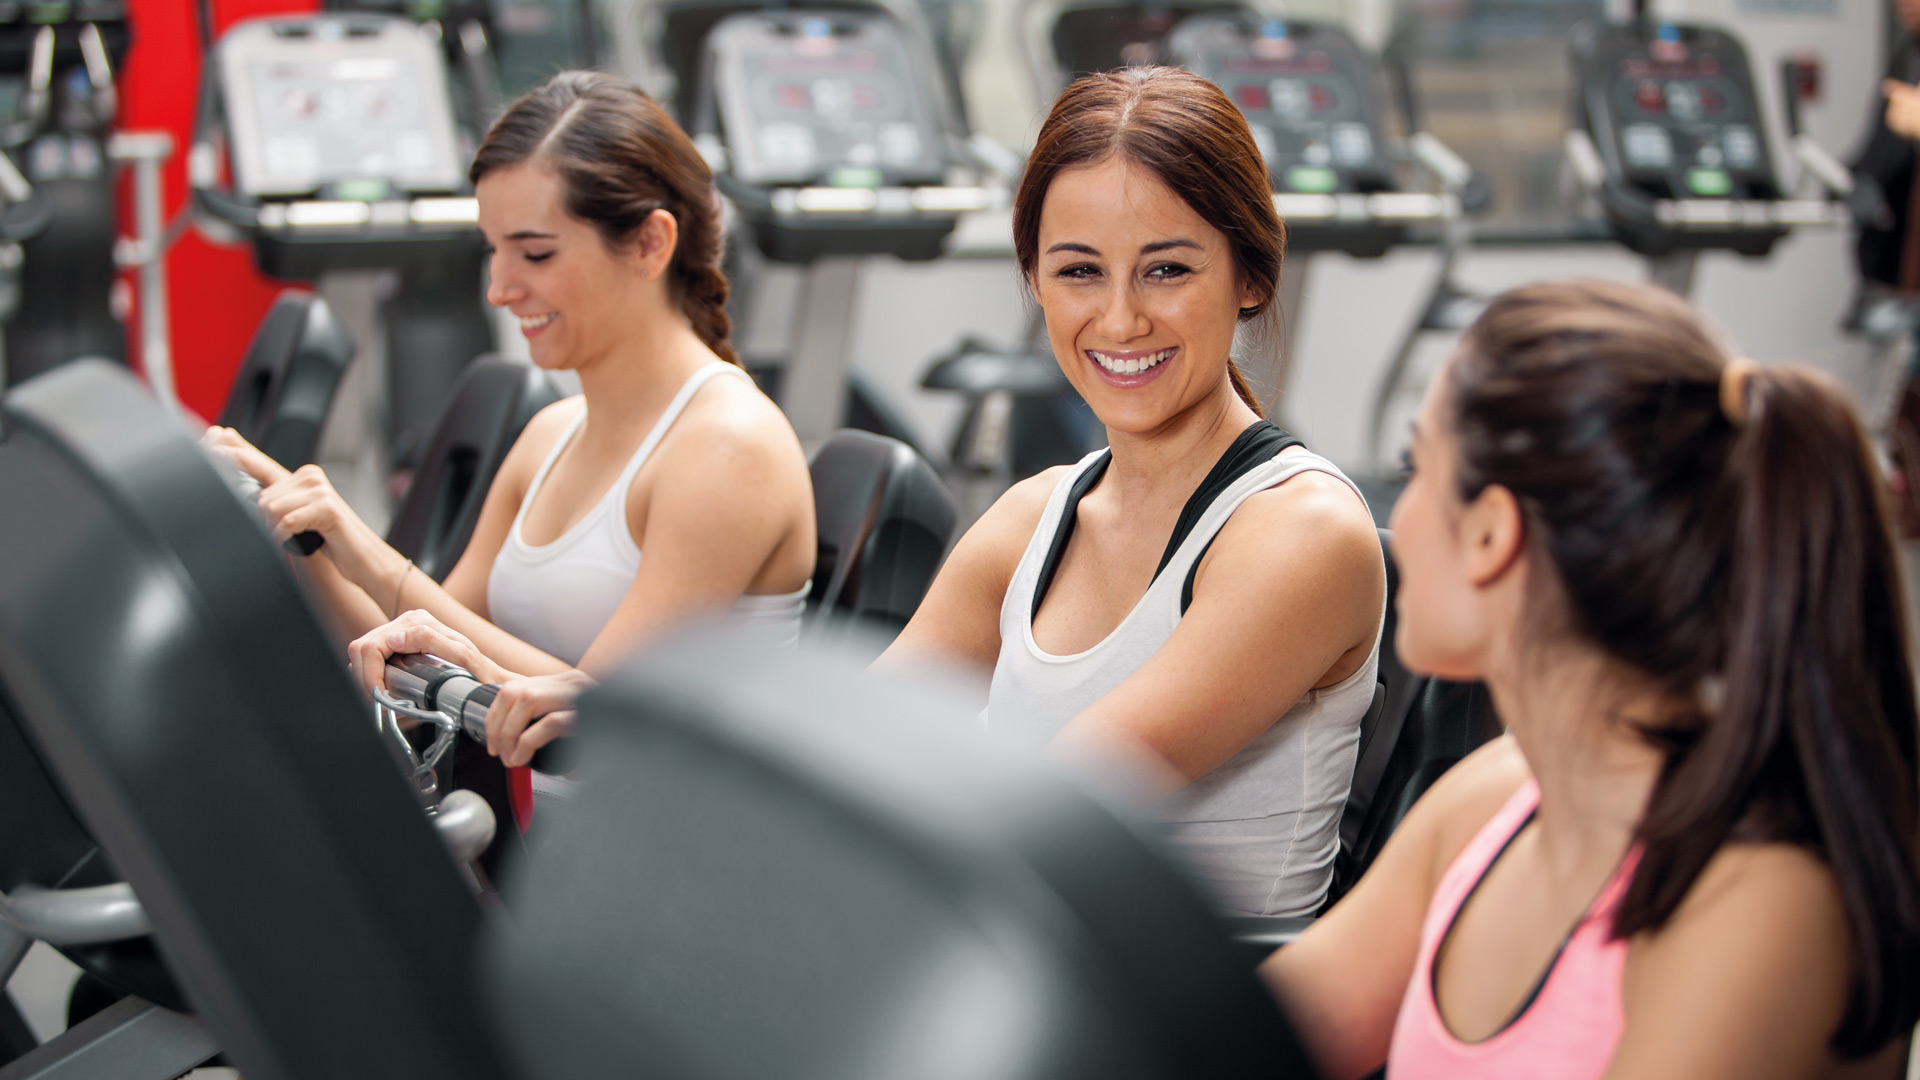 Woman-enjoying-gym-workout.jpg